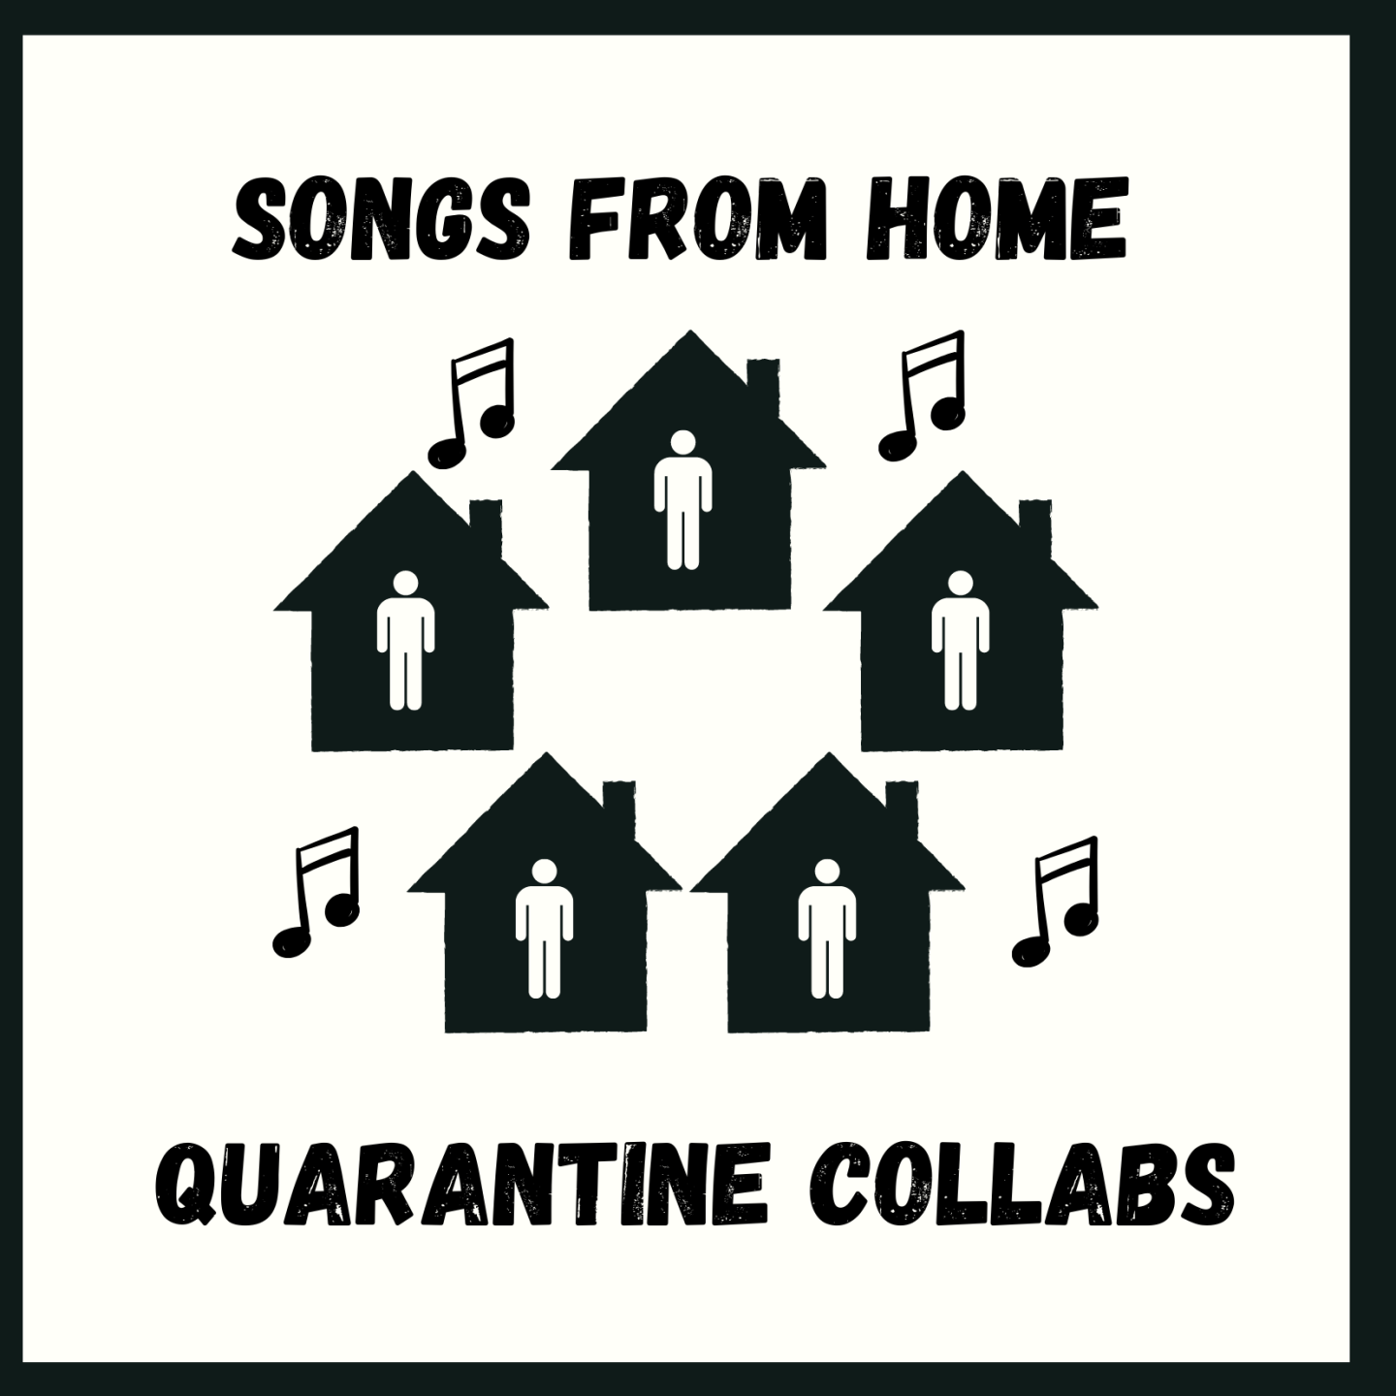 Songs From Home Art (1).png